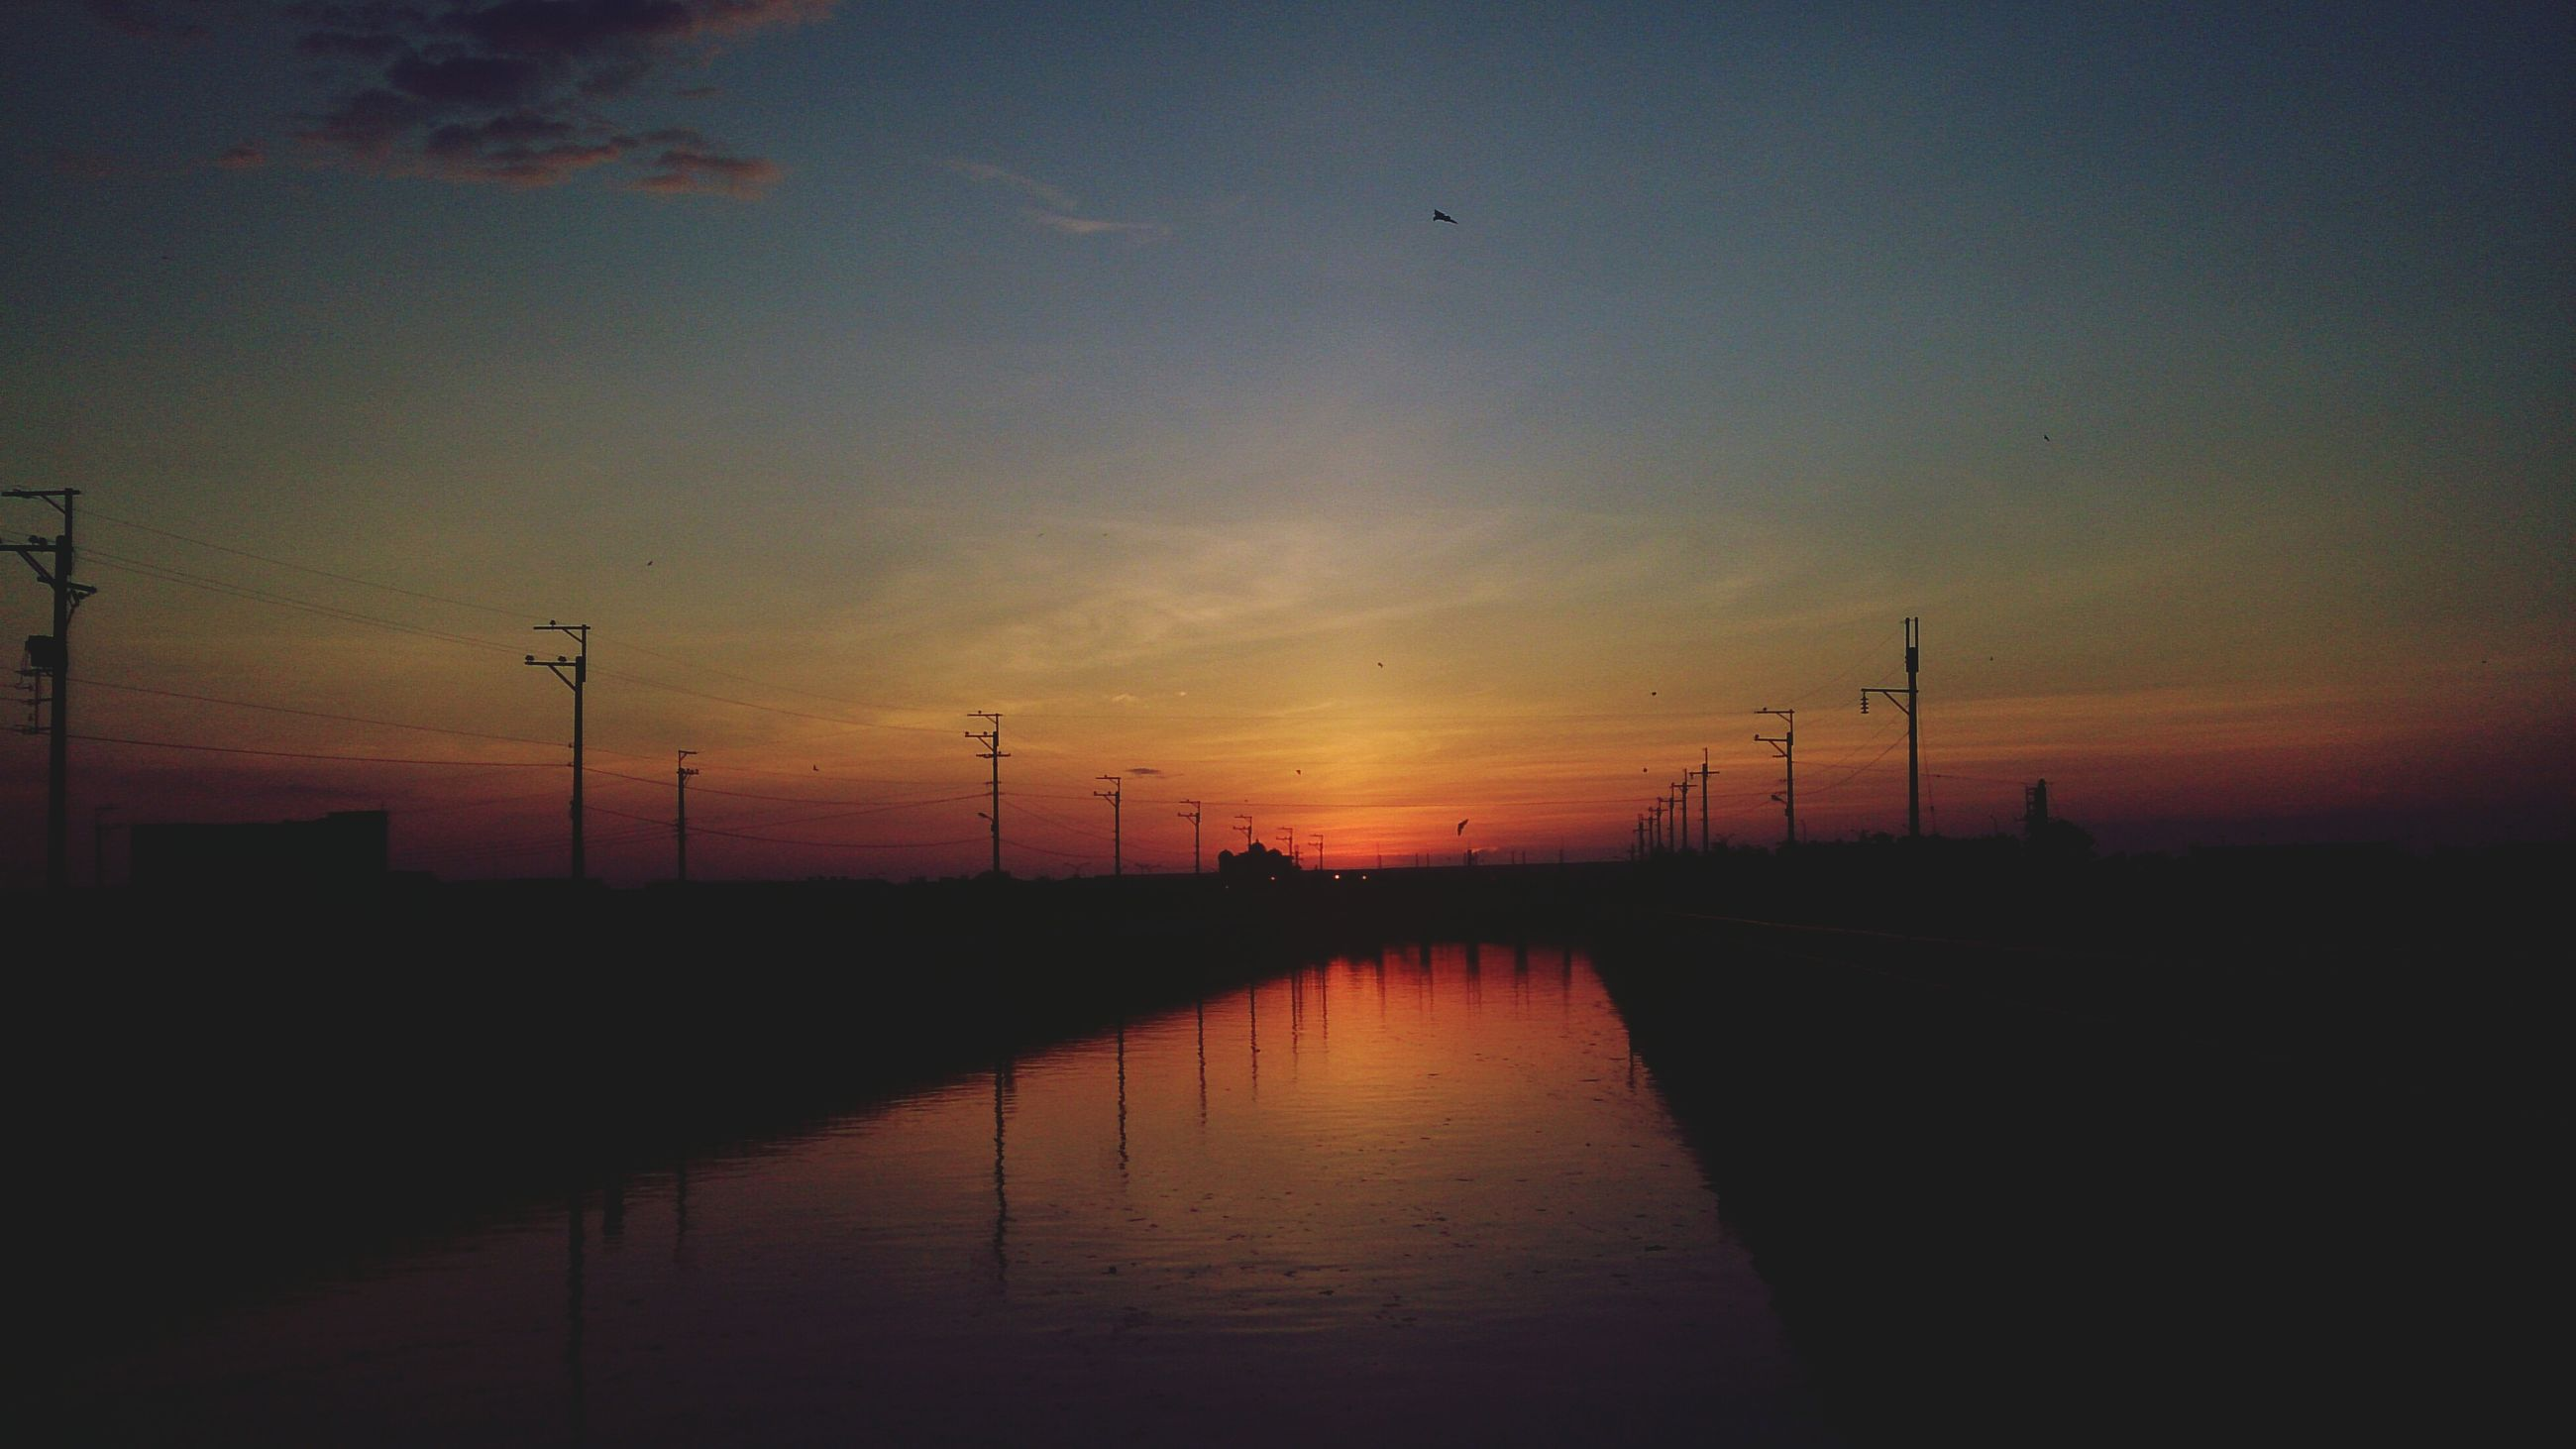 sunset, water, silhouette, reflection, waterfront, sky, tranquility, tranquil scene, scenics, orange color, beauty in nature, nature, lake, river, idyllic, dusk, outdoors, no people, electricity pylon, connection